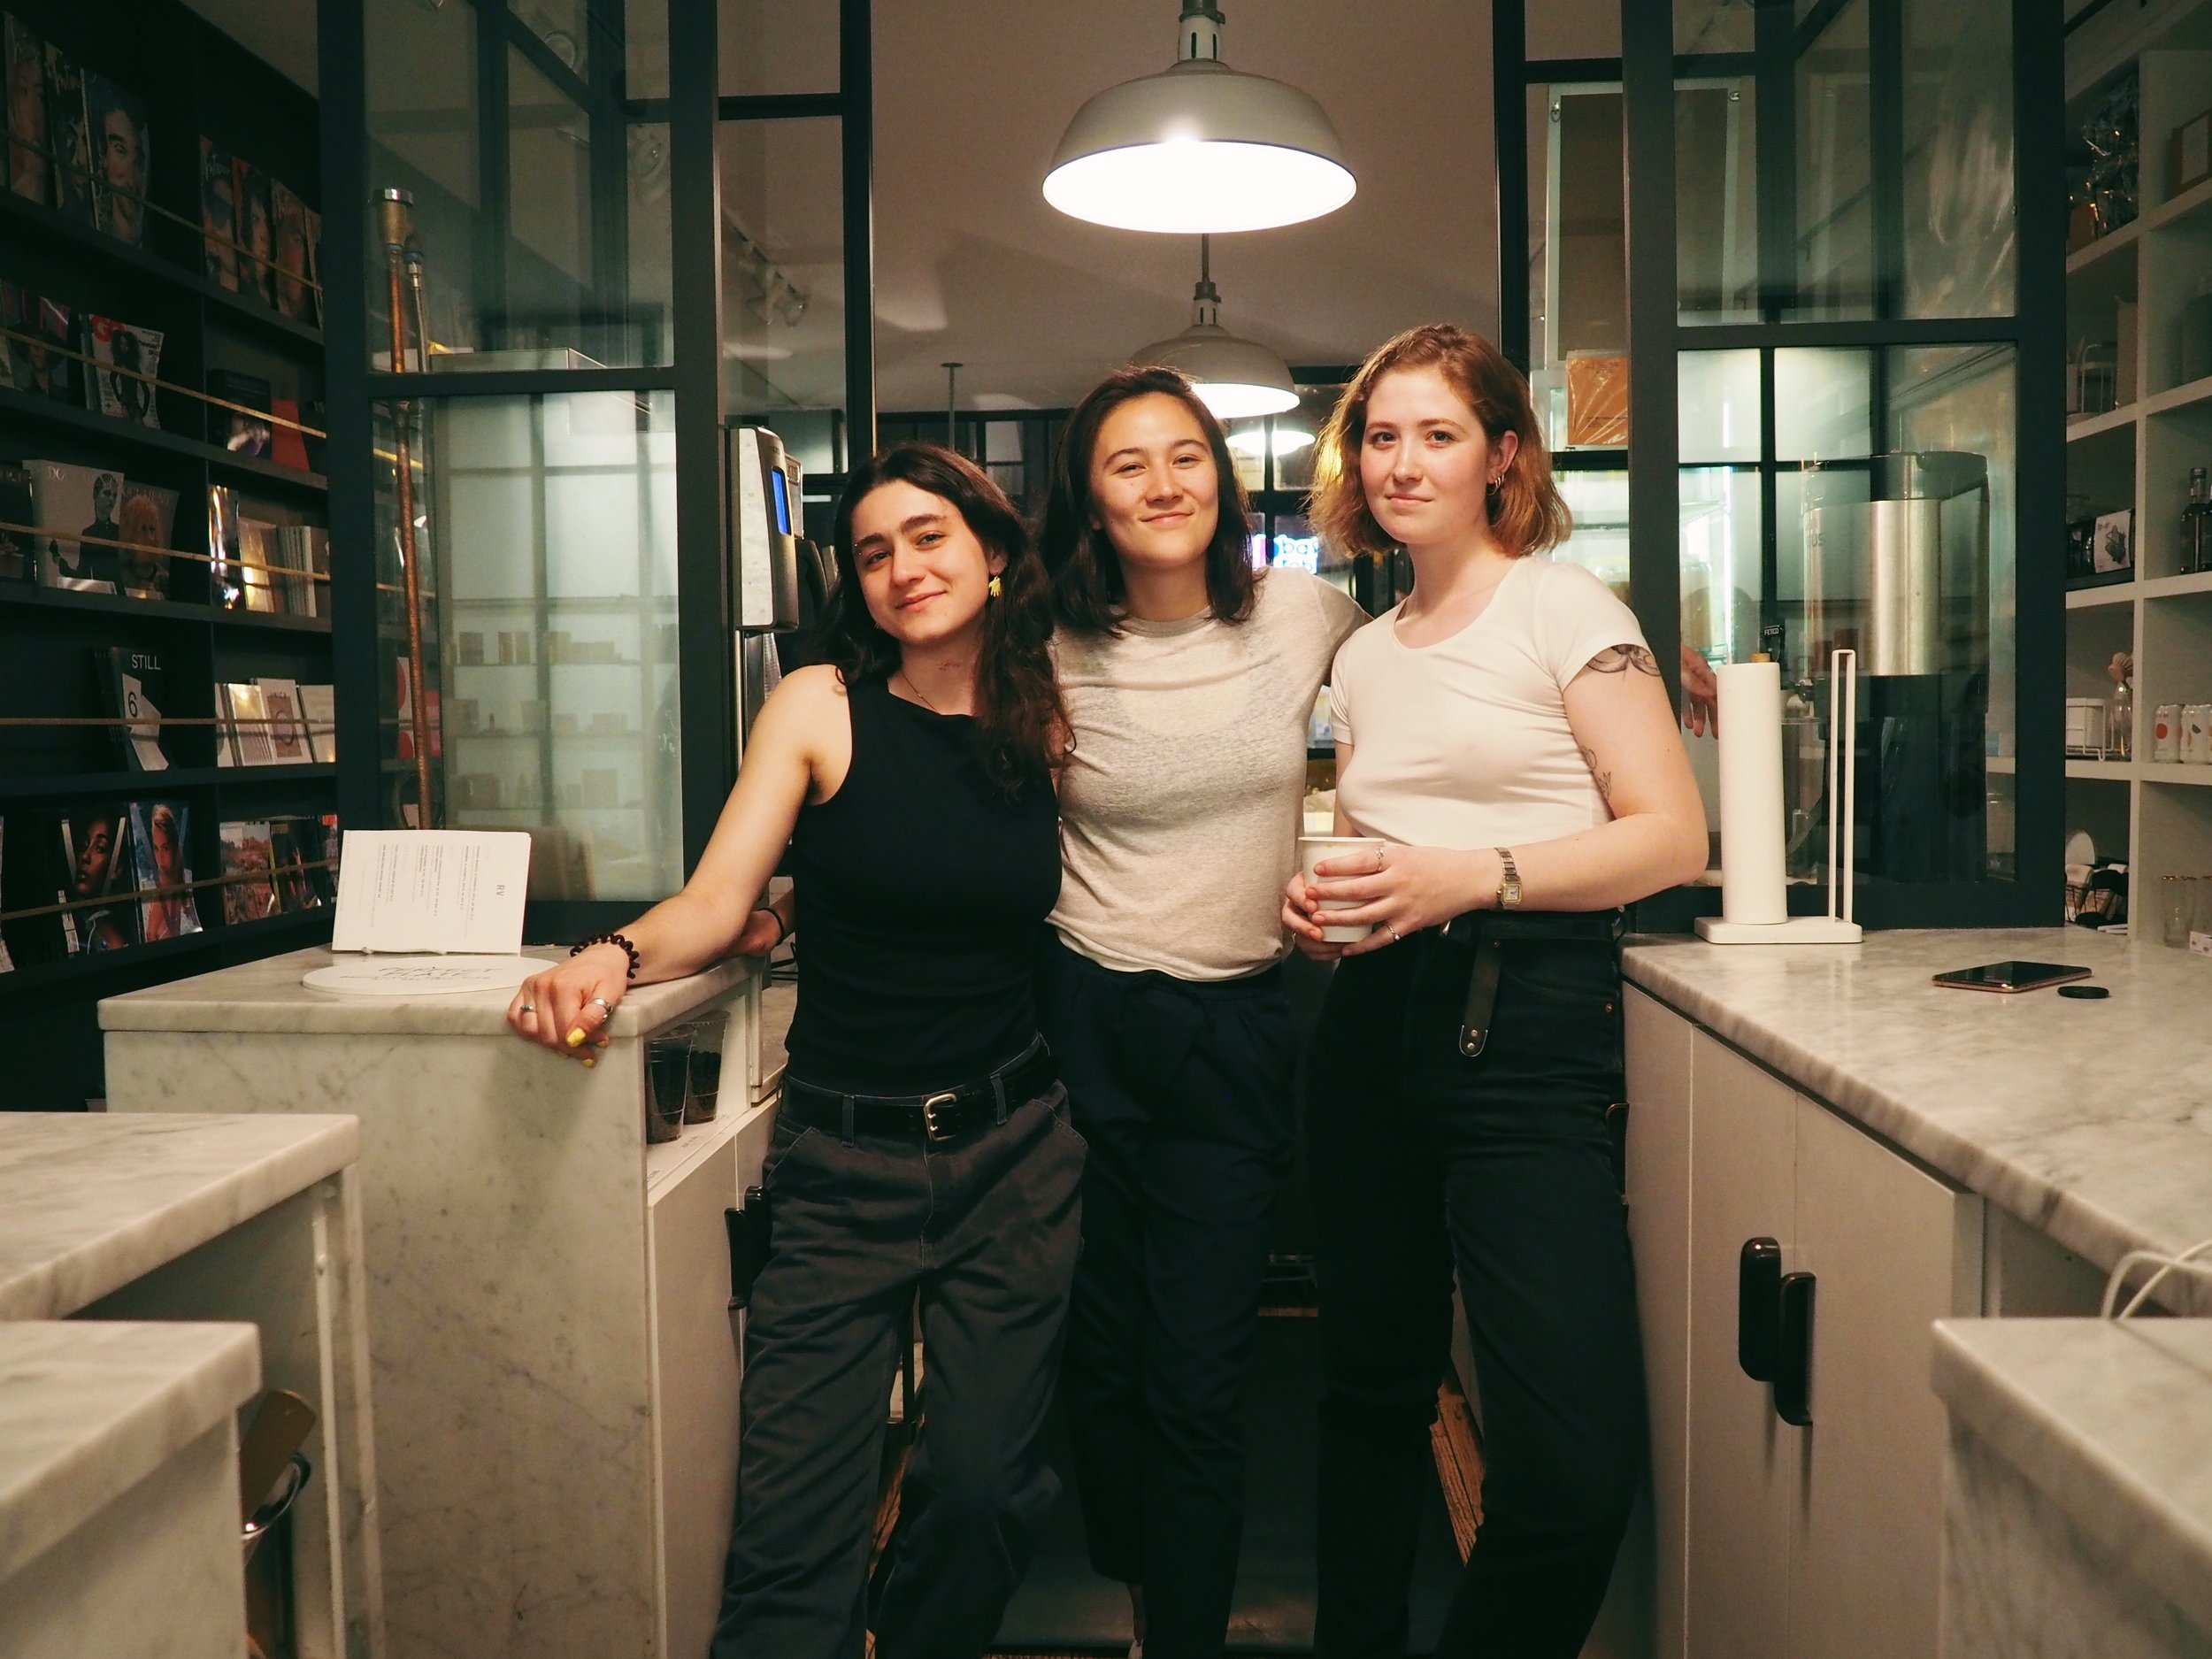 - venus started off as a group of close-knit friends that thought queer fam could use a little more space. now we're a growing community of queers in our 20s and 30s, living and working in new york city.